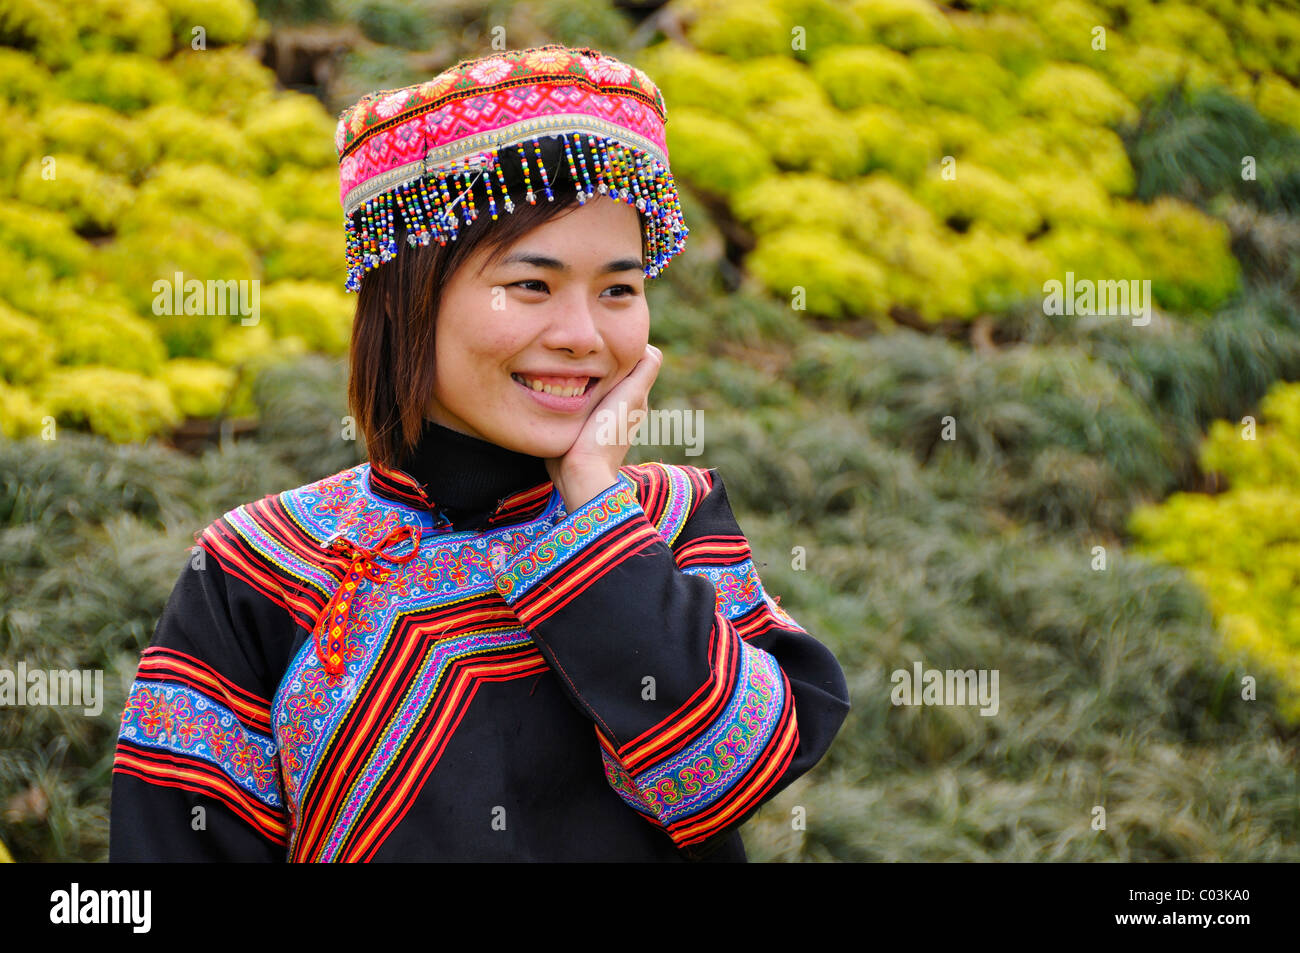 Tourist wearing a traditional costume, Sapa, Vietnam, Asia - Stock Image